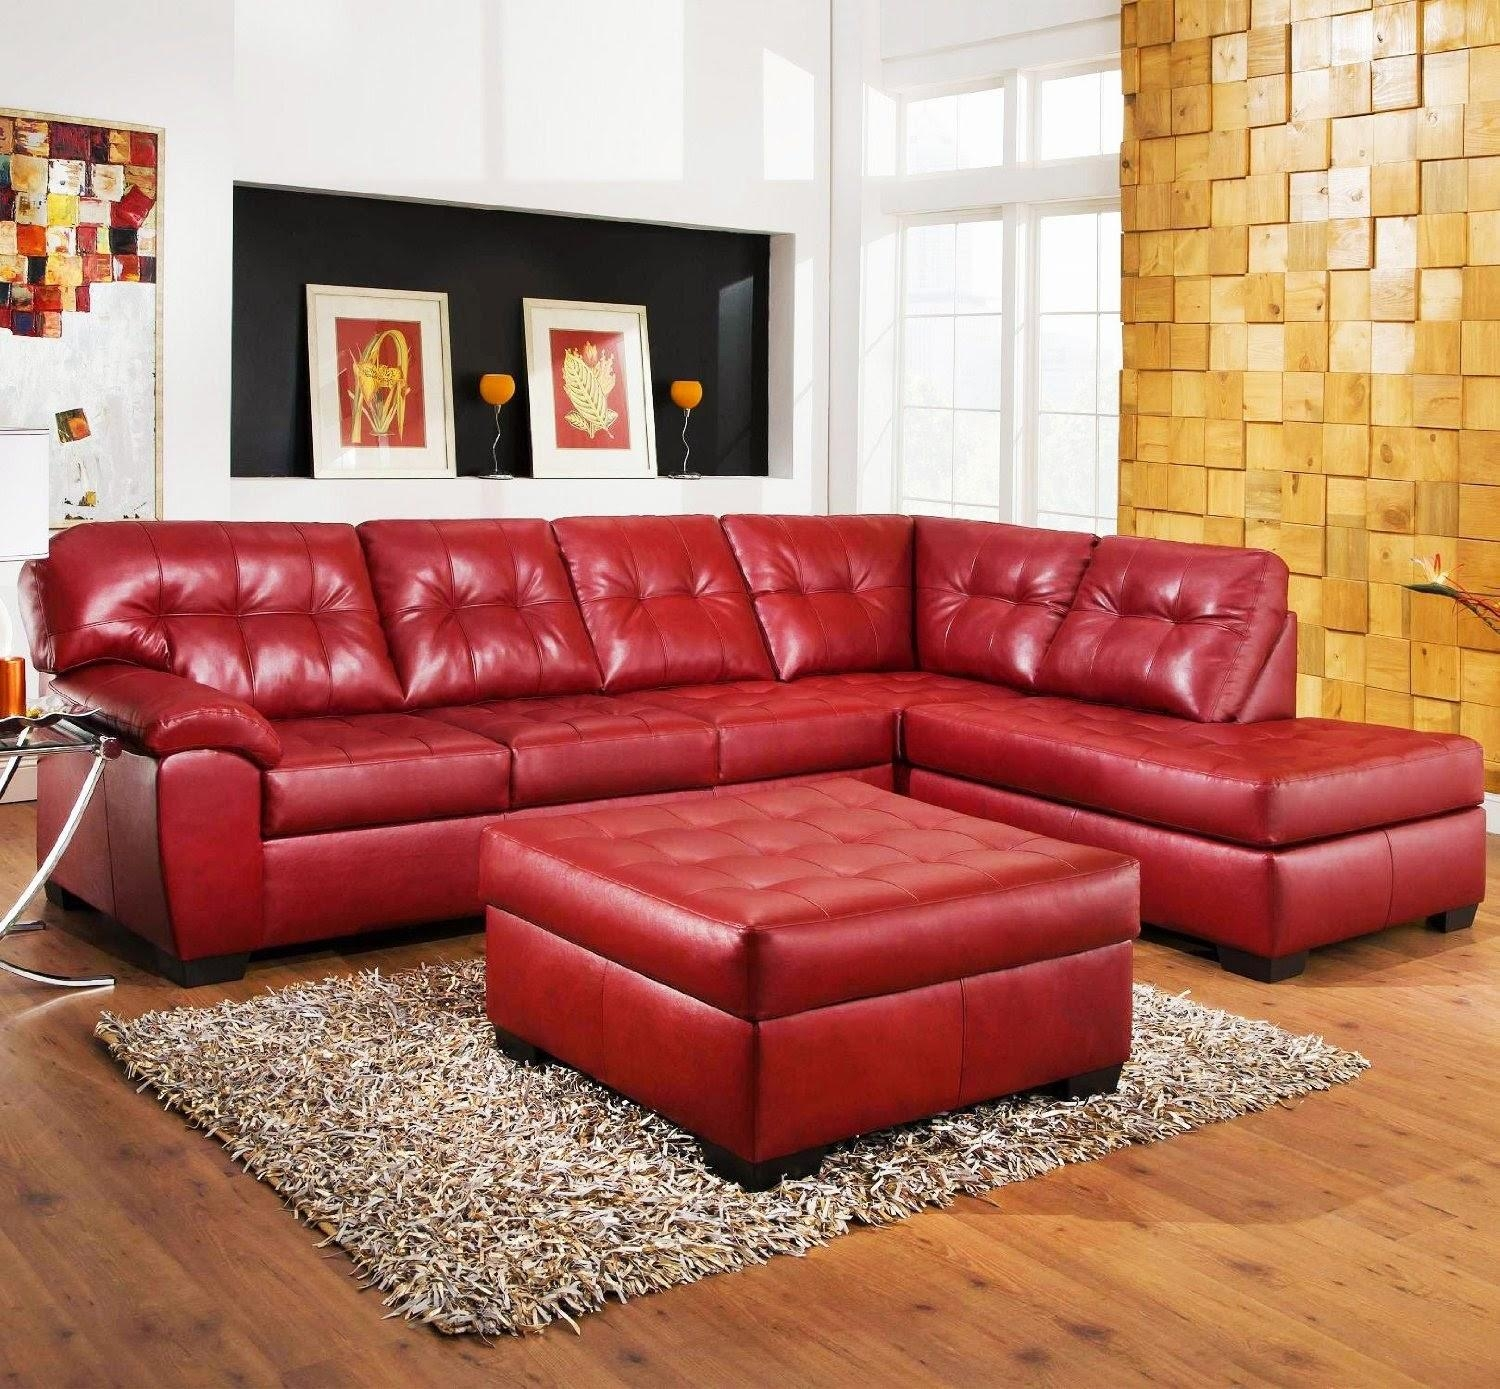 Furniture: Comfy Design Of Oversized Couch For Charming Living With Large Comfortable Sectional Sofas (View 14 of 20)